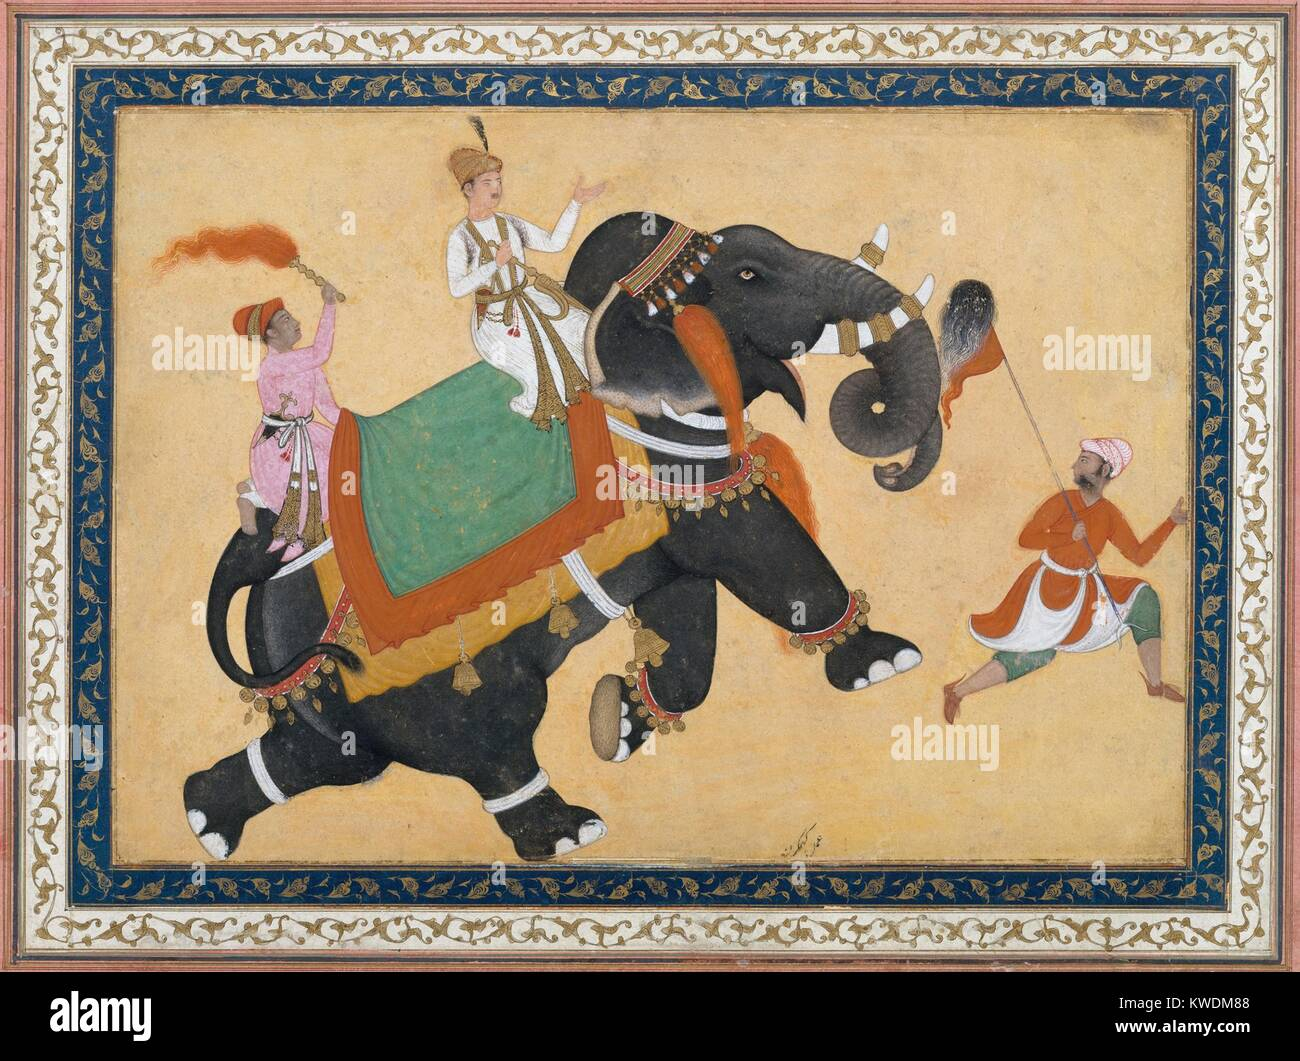 PRINCE RIDING AN ELEPHANT, by Khem Karan, 16th-17th c., Indian, Mughal watercolor painting. Elephants were prized Stock Photo